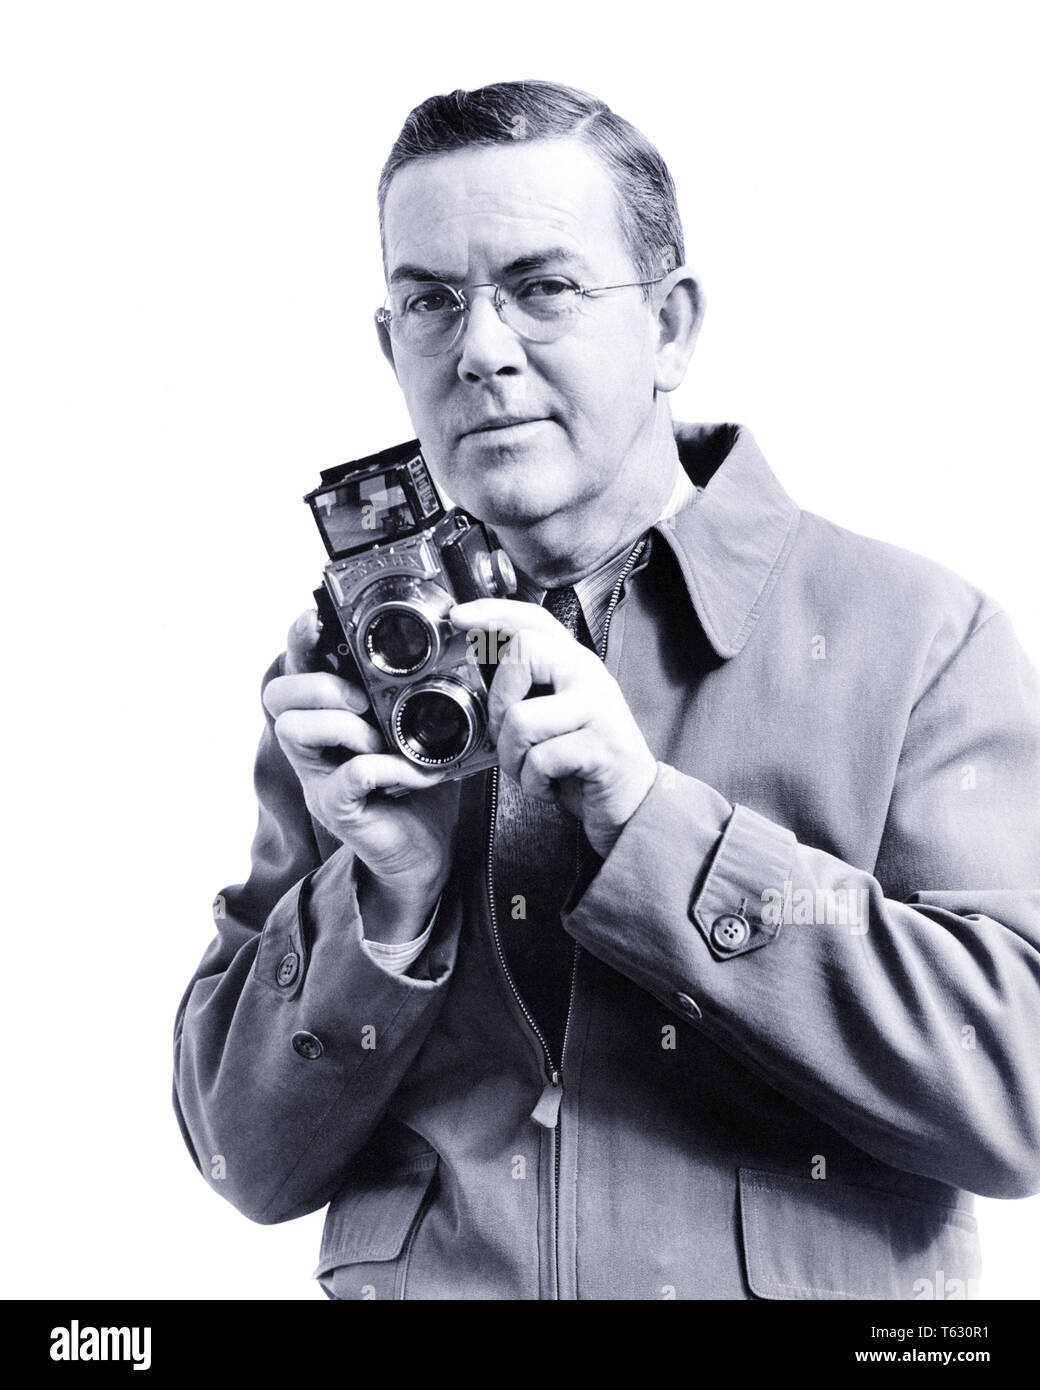 1930s H ARMSTRONG ROBERTS AGE 55 YEARS PROFESSIONAL PHOTOGRAPHER LOOKING AT CAMERA HOLDING TWIN LENS REFLEX ROLL FILM CAMERA  - u420 HAR001 HARS HALF-LENGTH PERSONS INSPIRATION MALES PROFESSION CONFIDENCE EXPRESSIONS MIDDLE-AGED B&W MIDDLE-AGED MAN EYE CONTACT VISION SKILL OCCUPATION SKILLS CHEERFUL ADVENTURE LEISURE CAREERS RECREATION PRIDE PHOTOGRAPHING AUTHORITY OCCUPATIONS SMILES CONCEPTUAL H ARMSTRONG ROBERTS JOYFUL STYLISH REFLEX ROLL FILM CREATIVITY RELAXATION TWIN LENS BLACK AND WHITE CAUCASIAN ETHNICITY HAR001 OLD FASHIONED - Stock Image